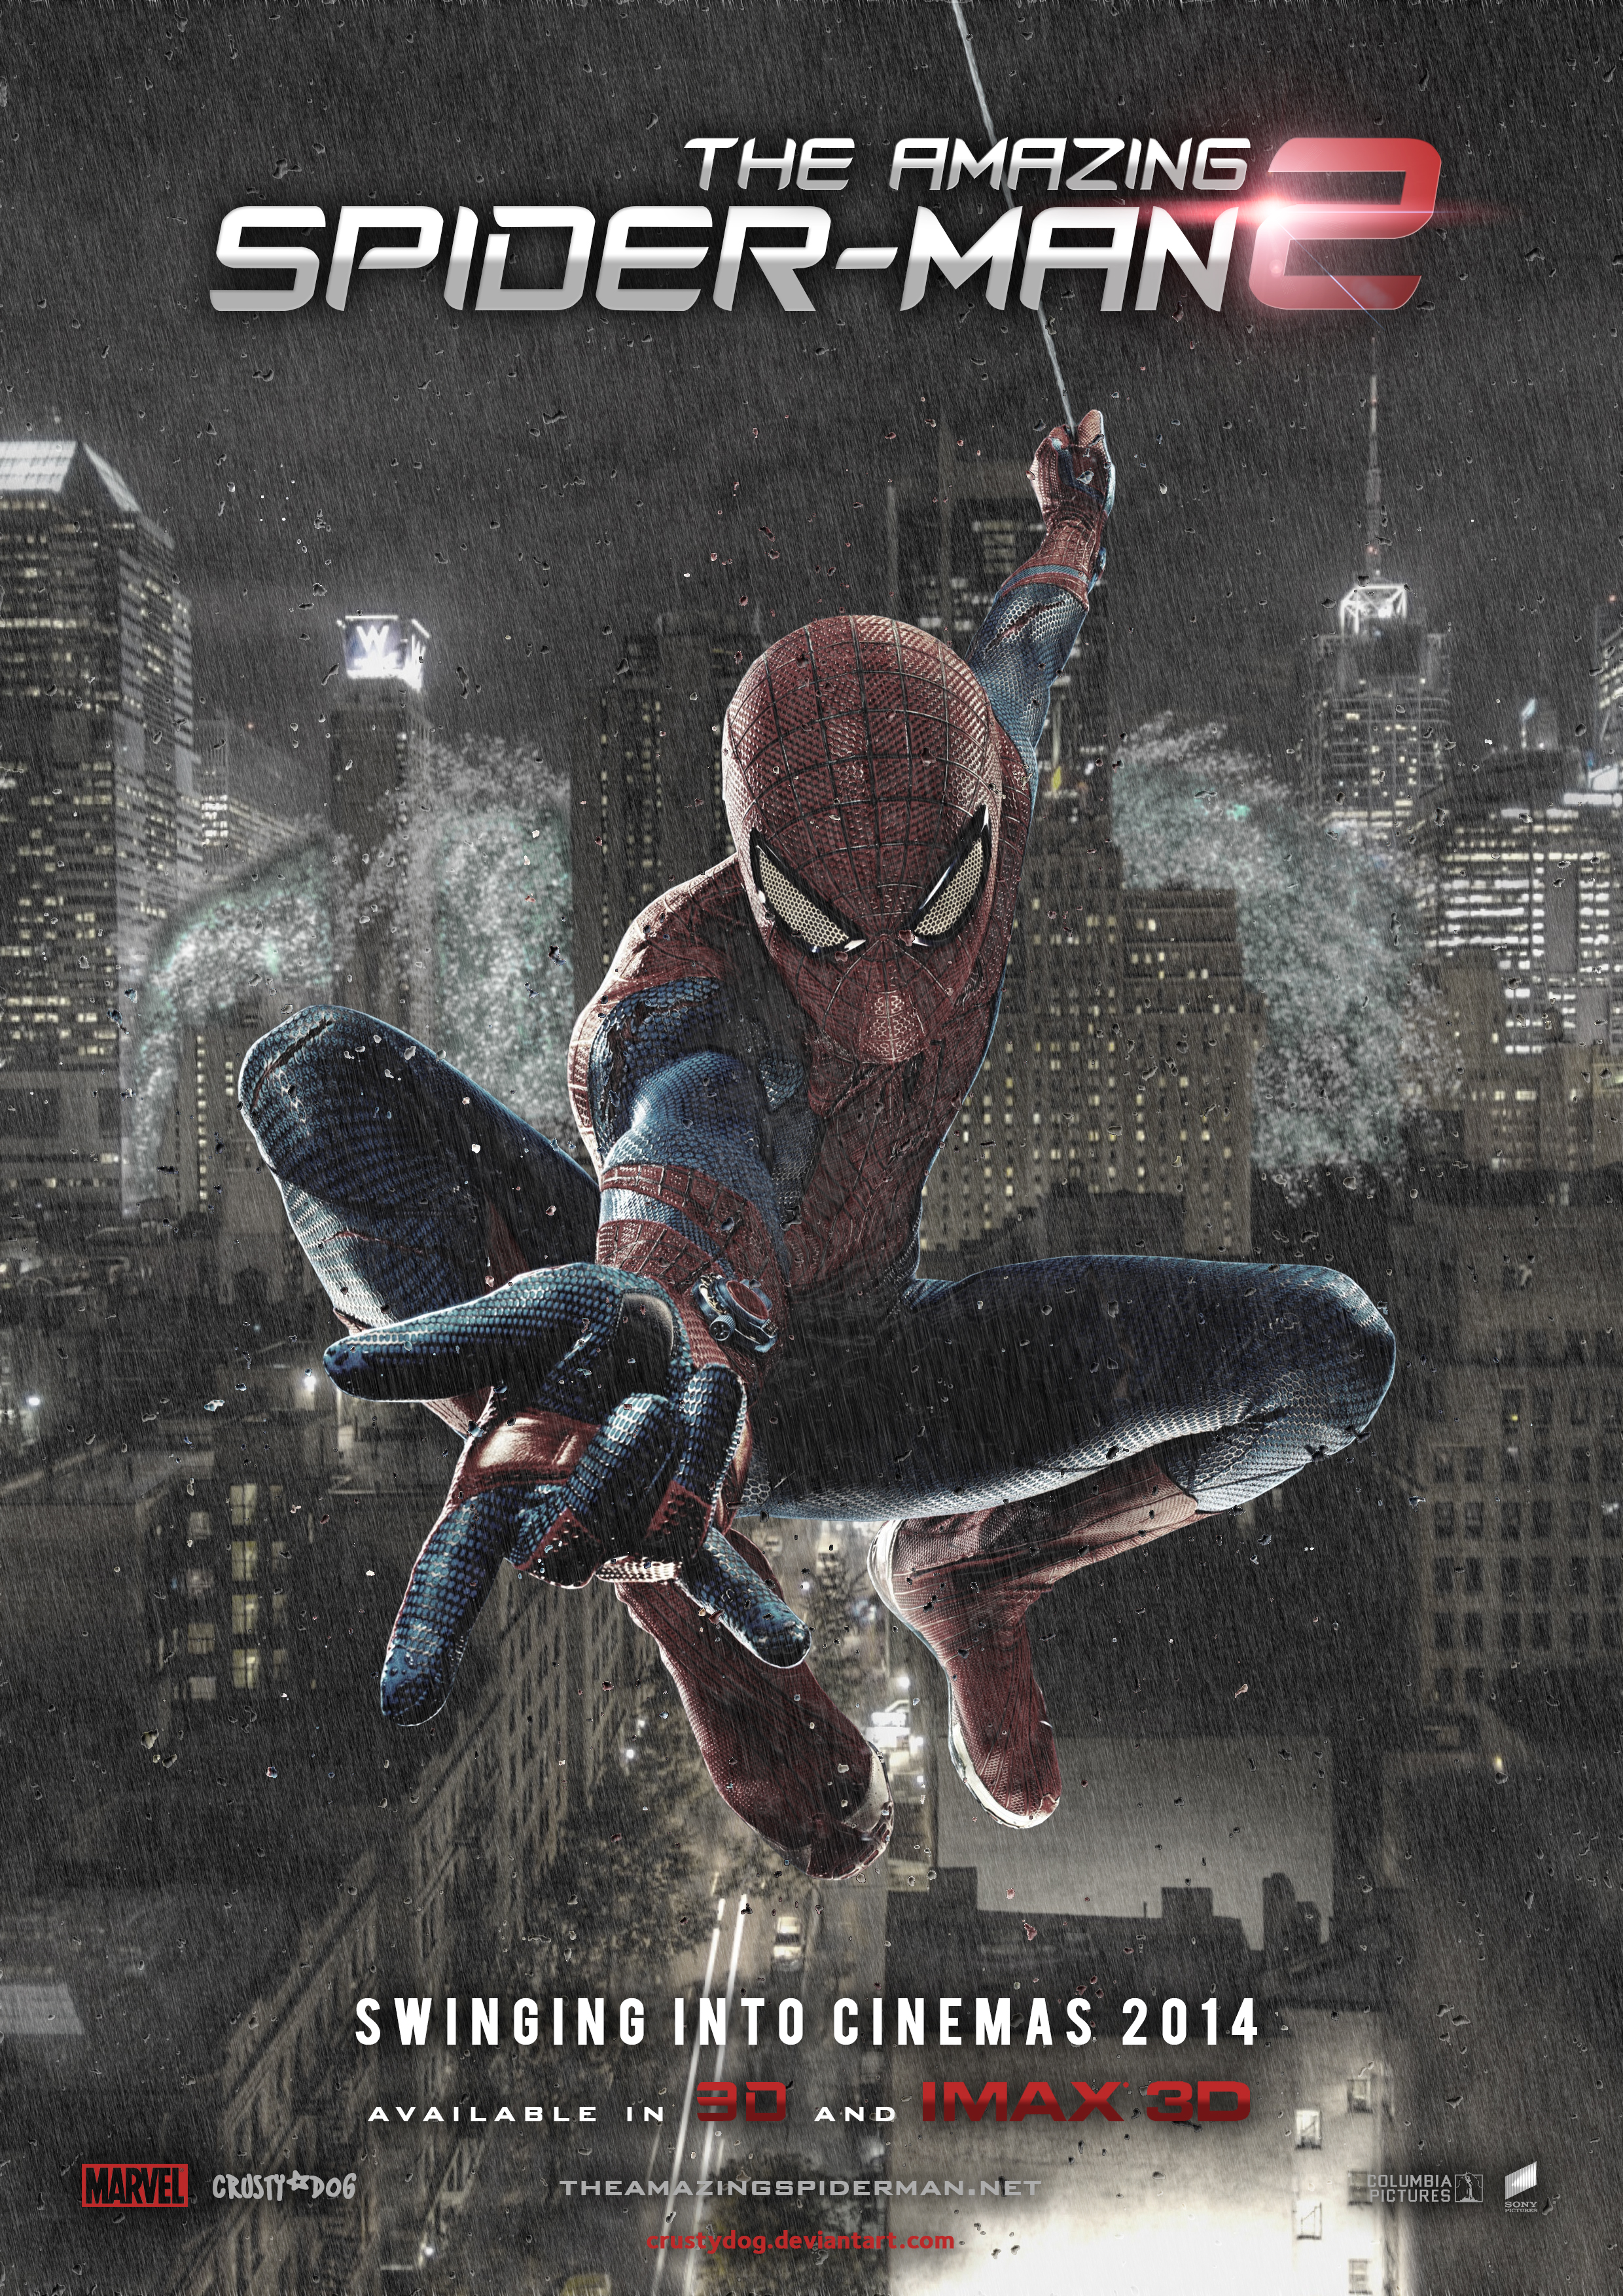 the amazing spiderman 2 2014 movie poster by crustydog